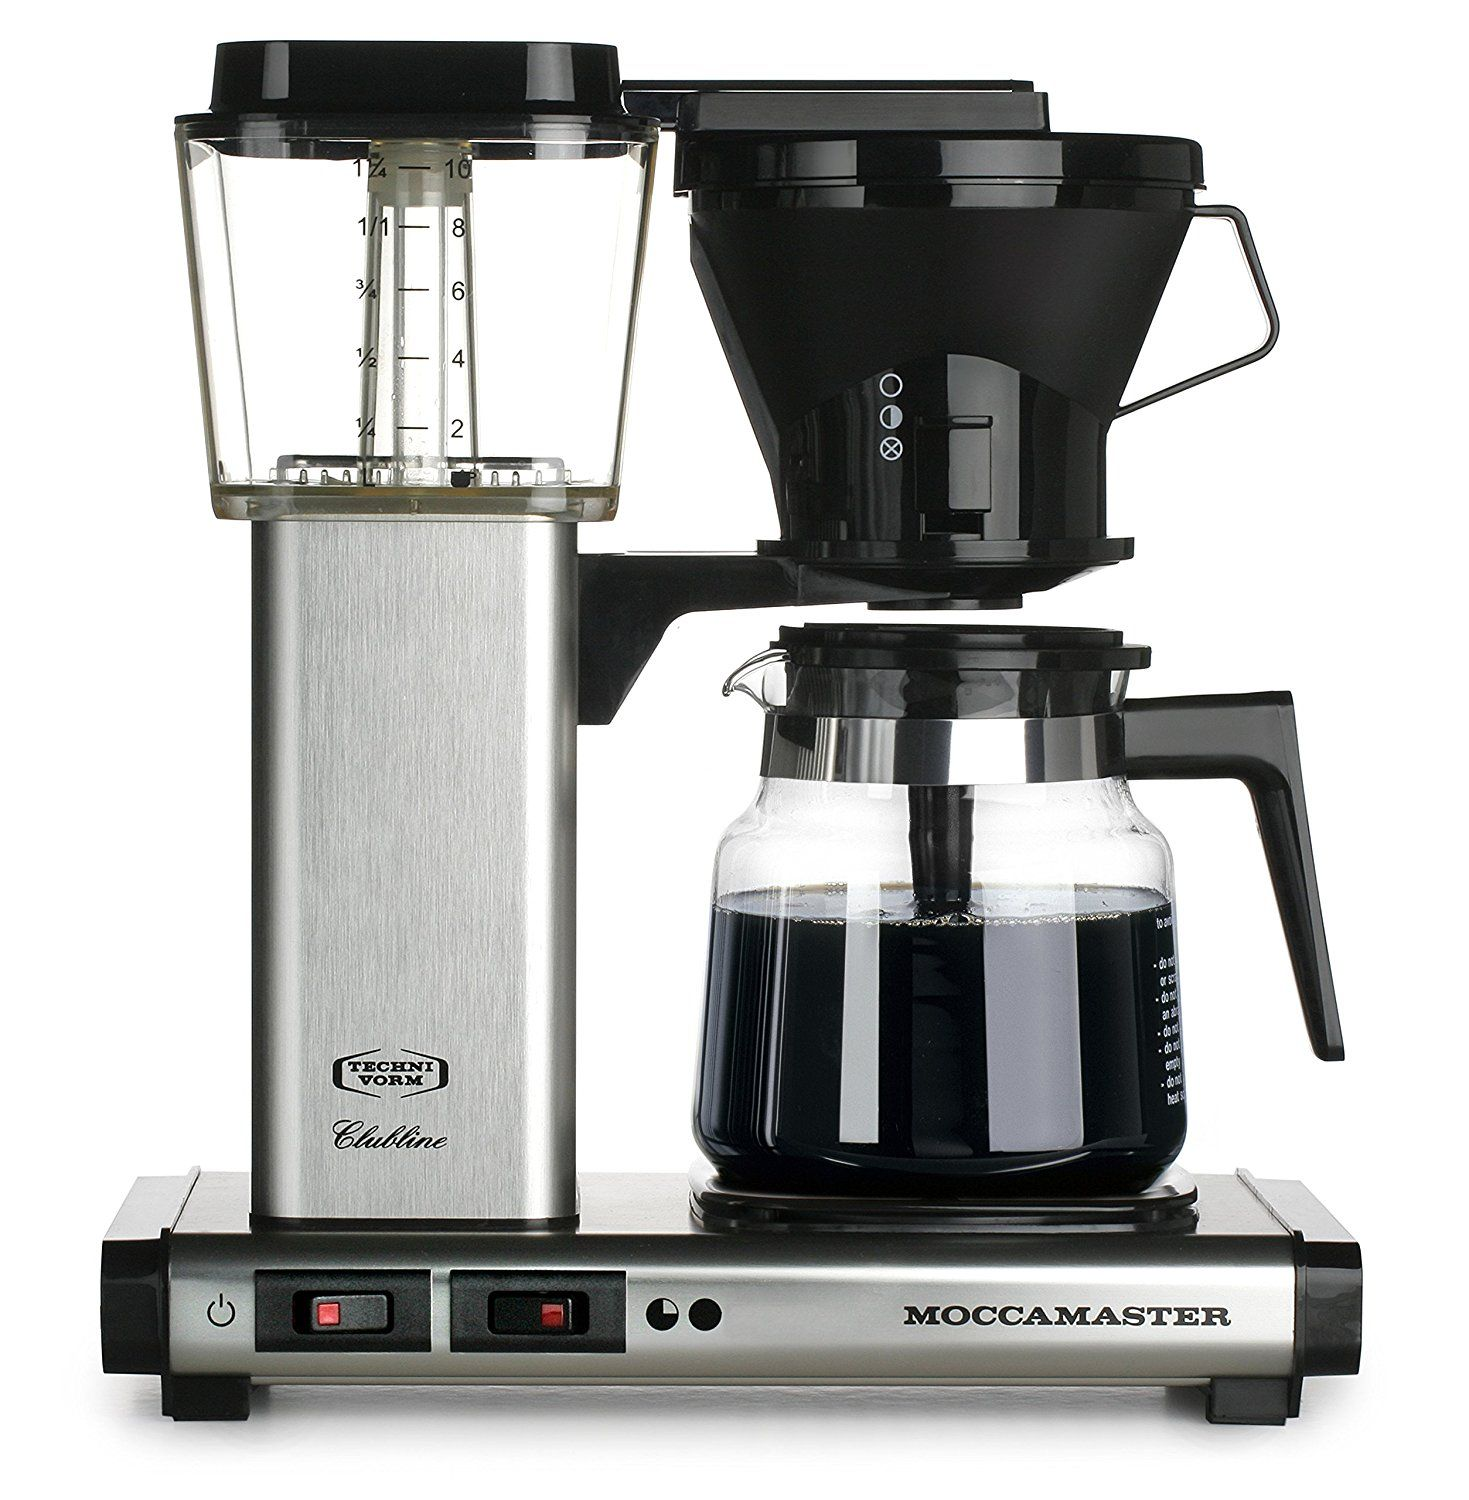 Moccamaster KB 741 10Cup Coffee Brewer with Glass Carafe